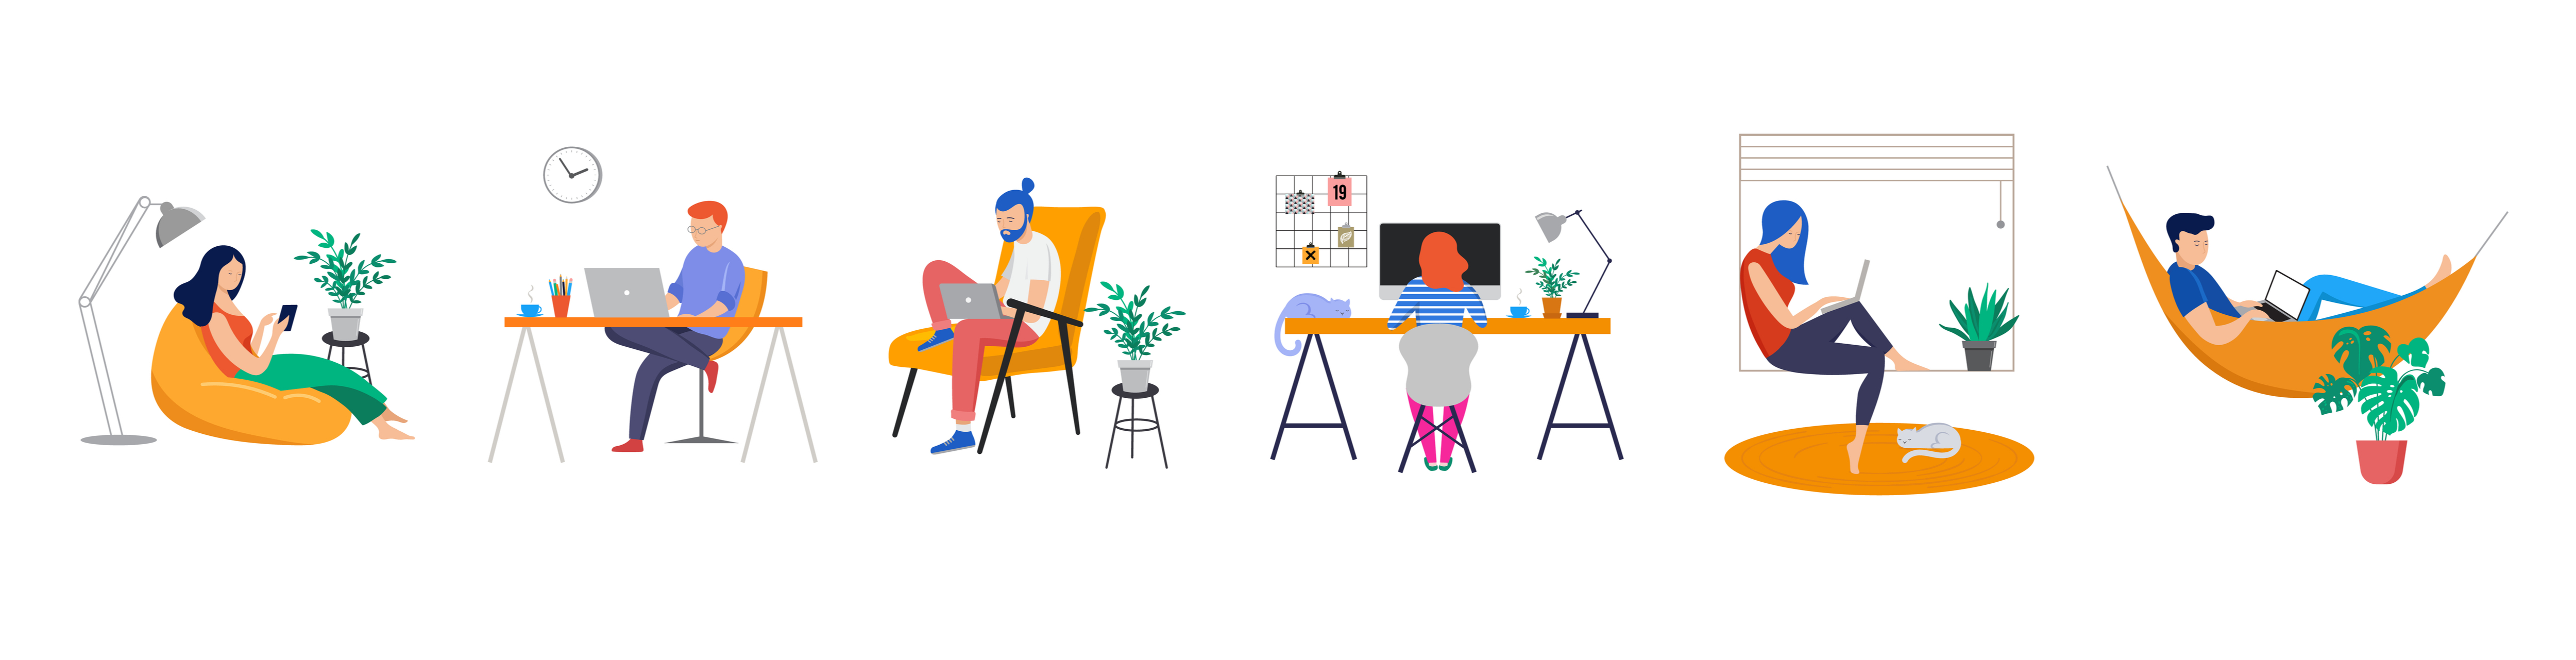 Illustration of multiple pople sitting with their phones and computers.